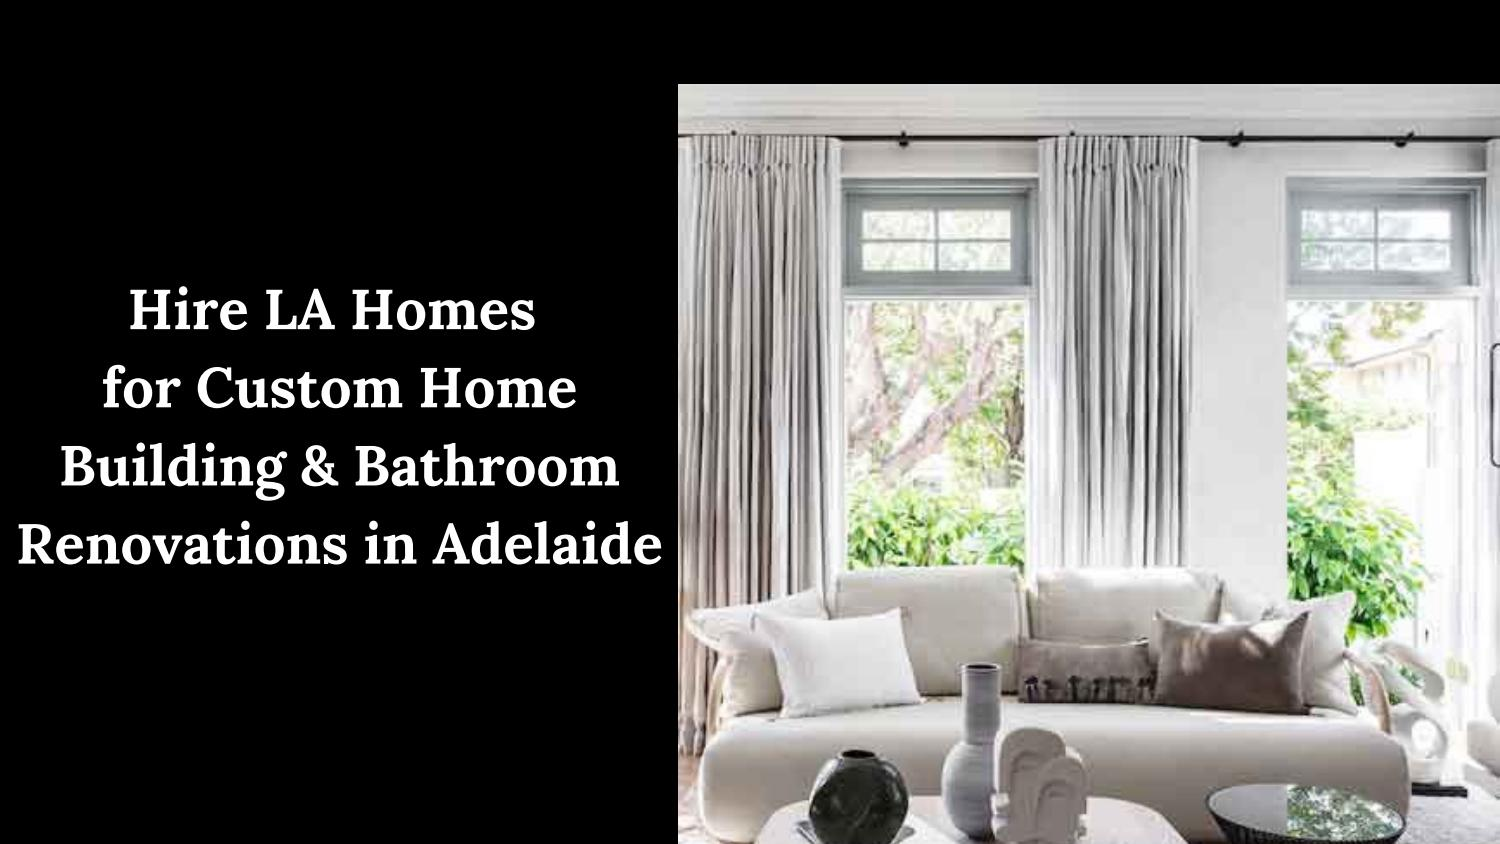 Hire LA Homes for Custom Home Building & Bathroom Renovations in Adelaide